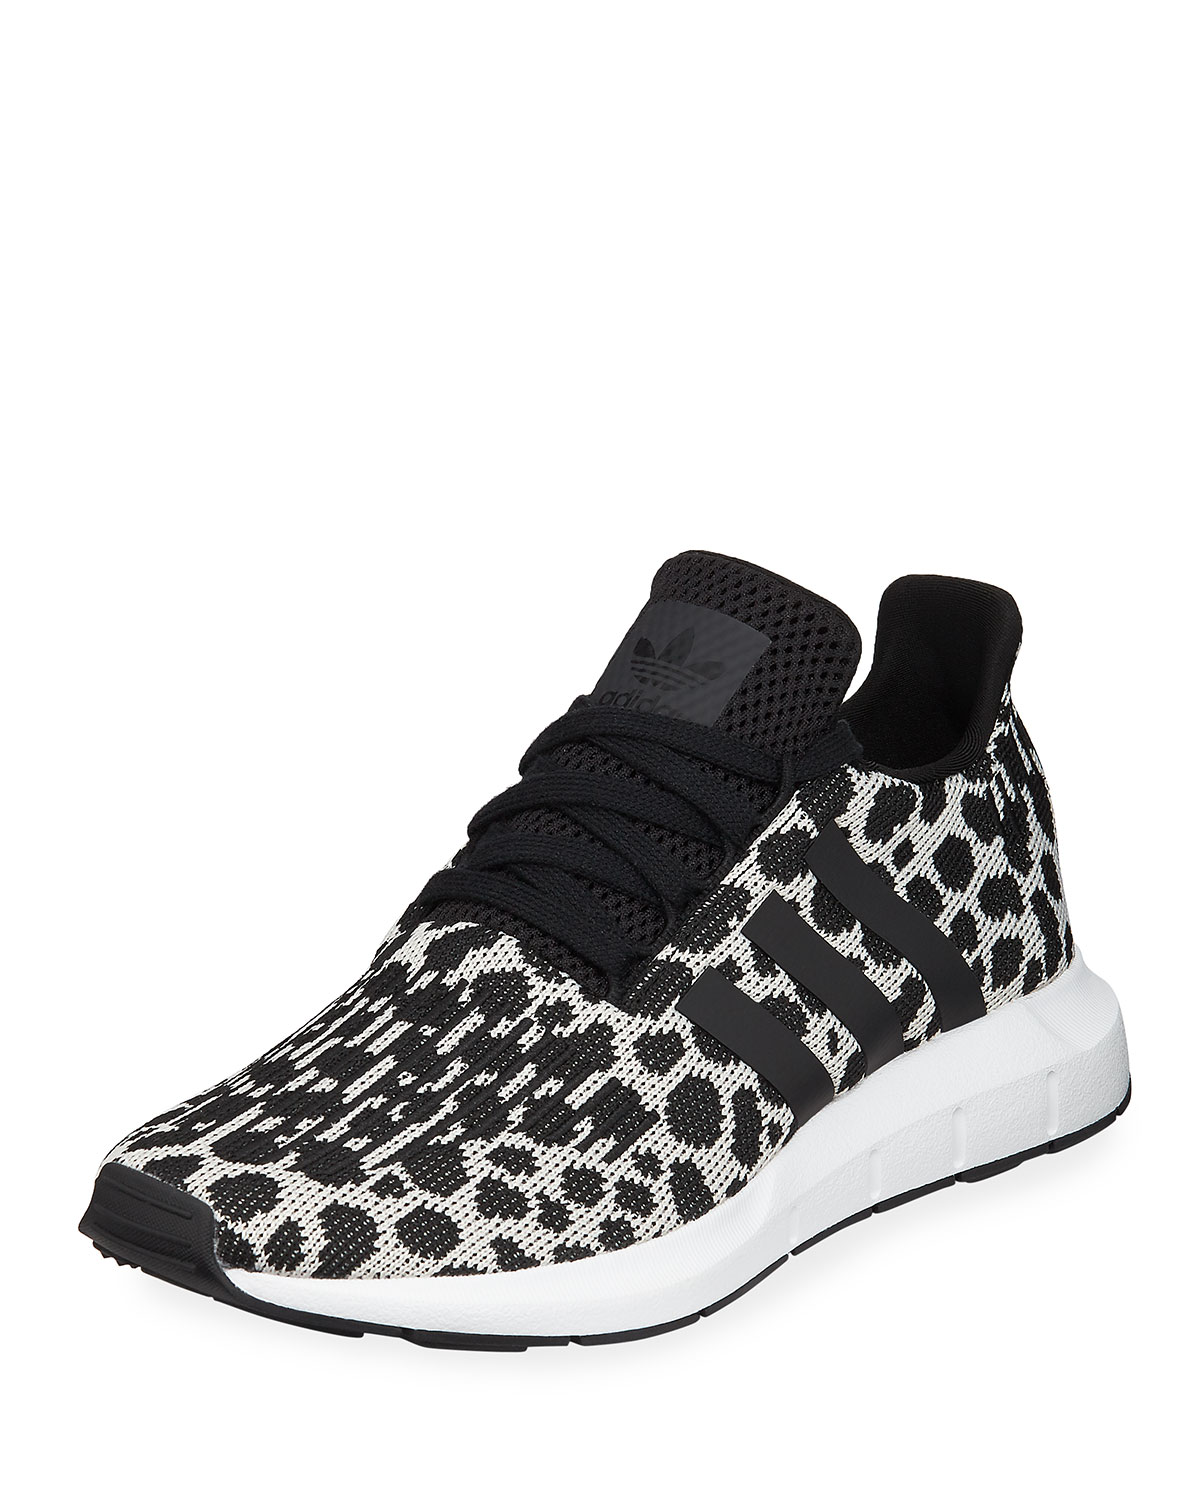 8366772928f58 Adidas Swift Run Cheetah-Print Trainer Sneakers